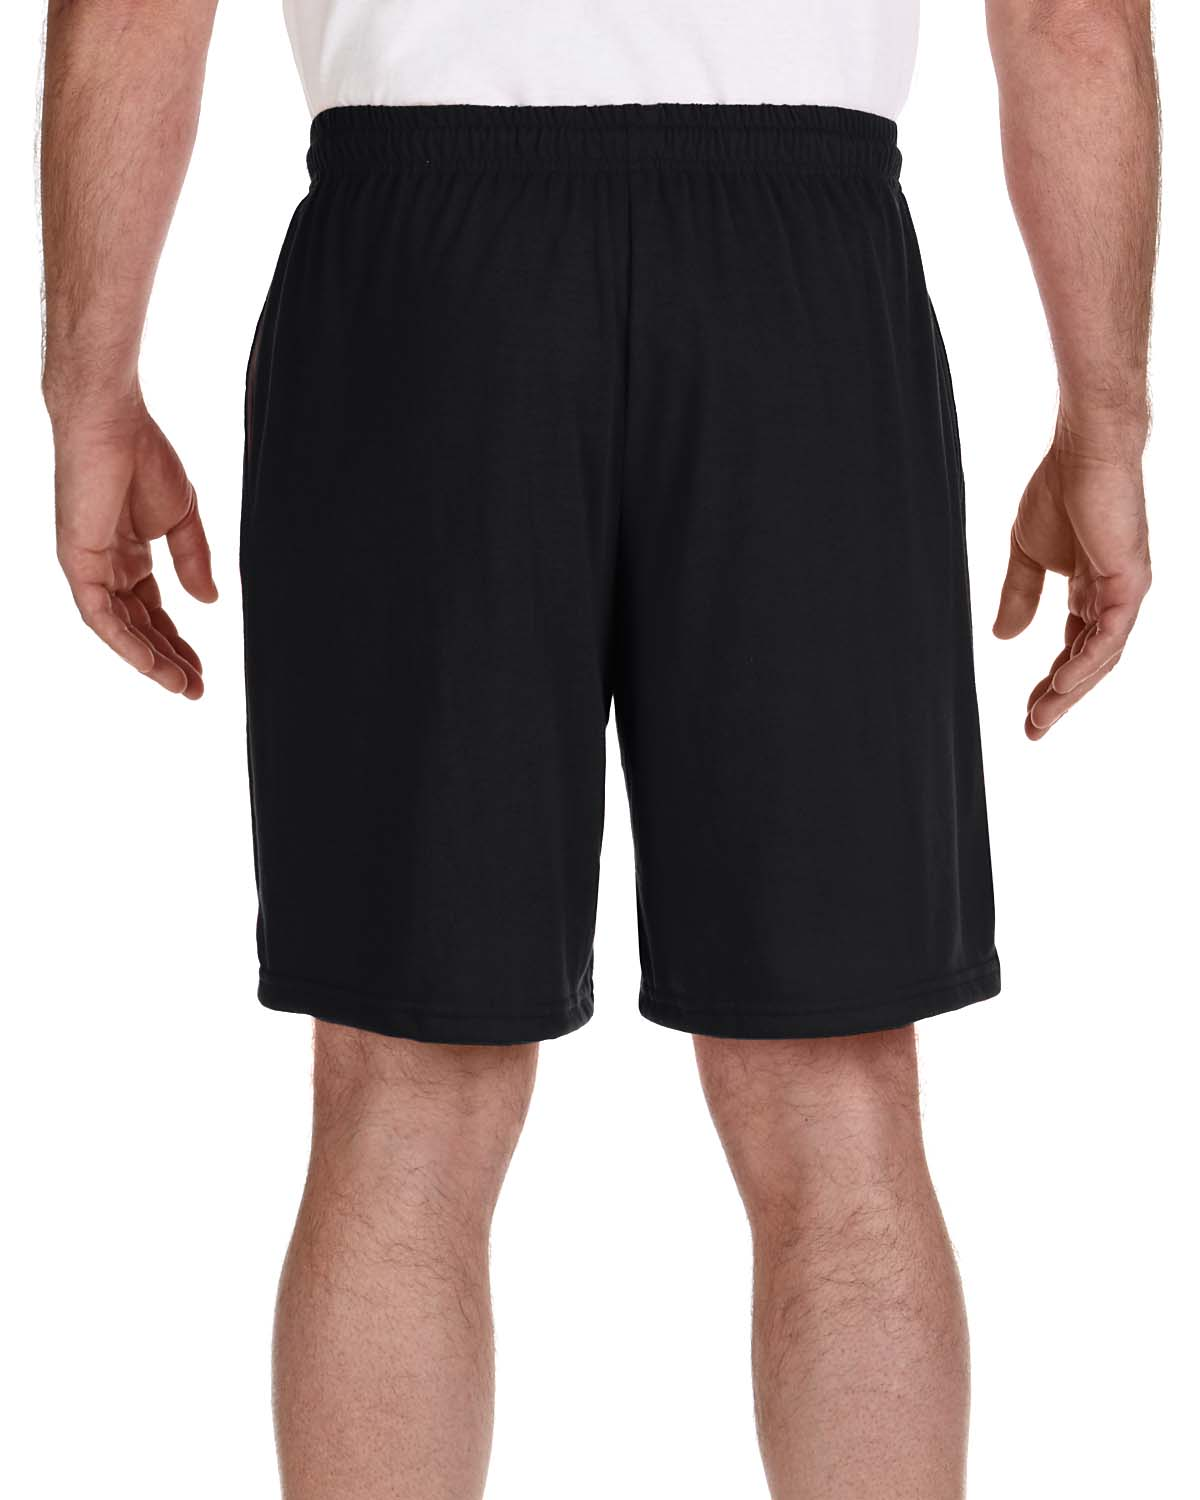 Mens mens shorts with pockets Shop Epic Sports for the largest selection of soccer equipment, baseball jerseys, football gear, basketball uniforms, volleyballs, and more!